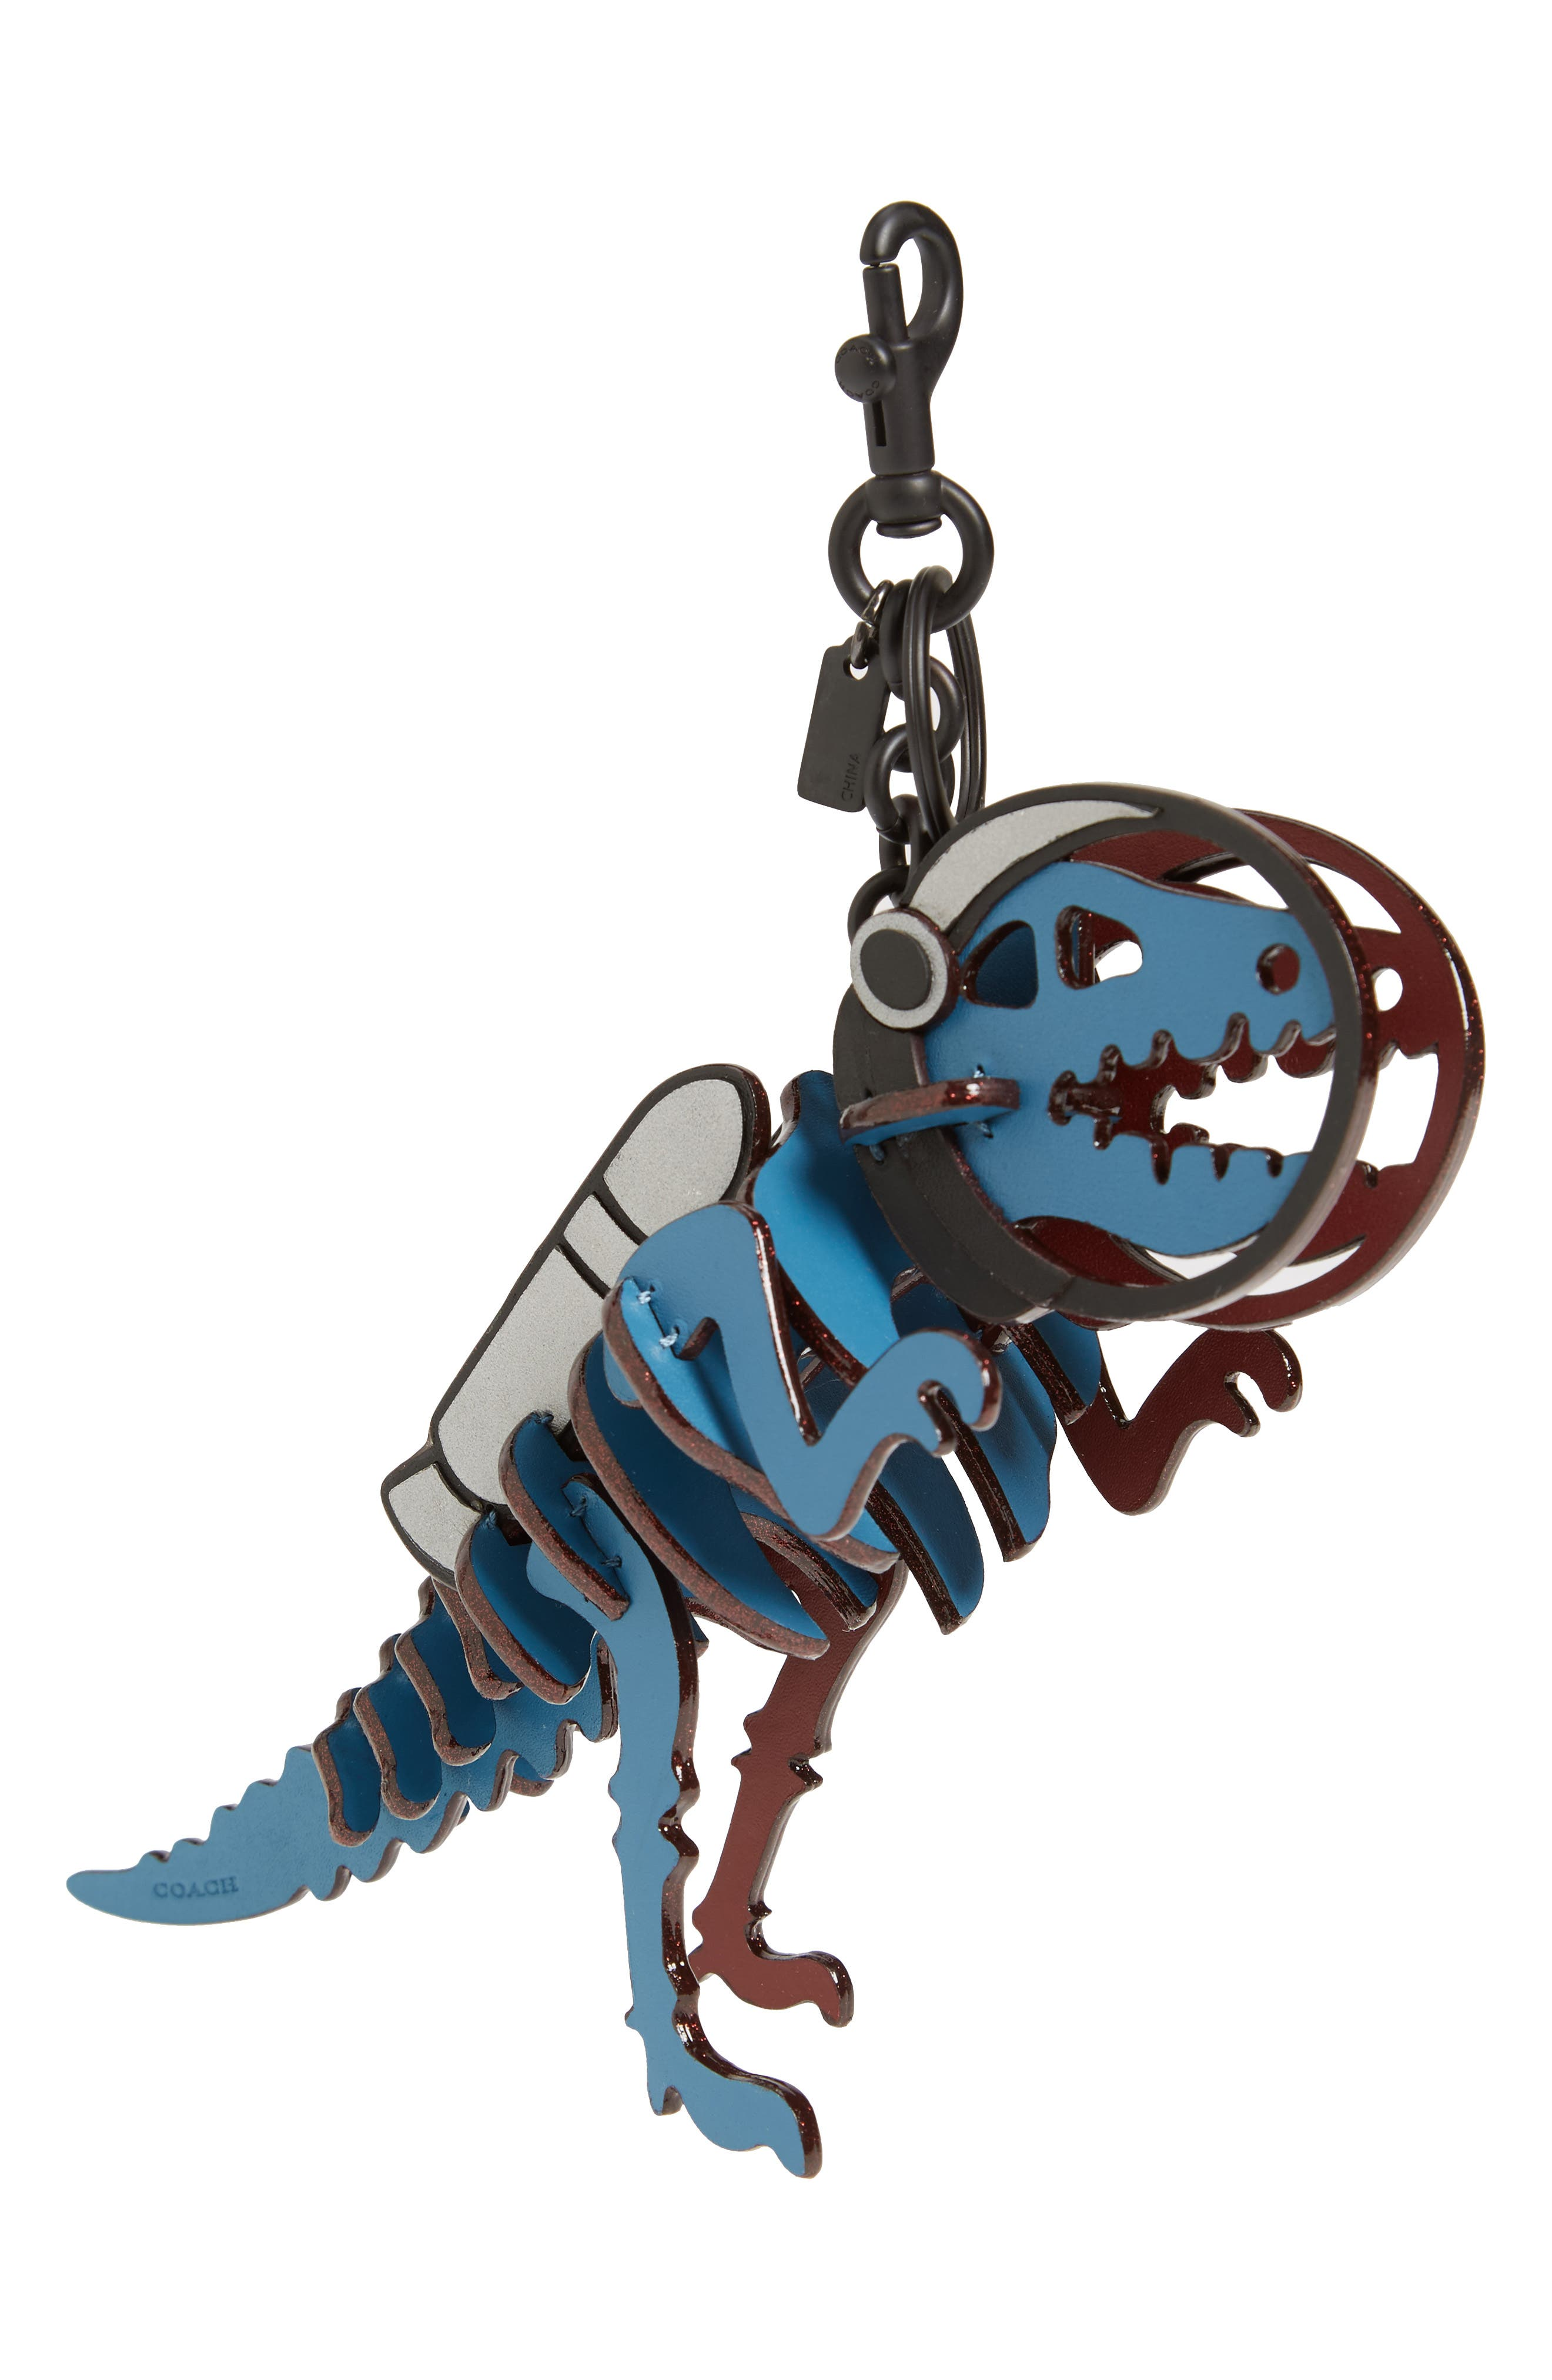 COACH 1941 Jetpack Rexy Leather Bag Charm